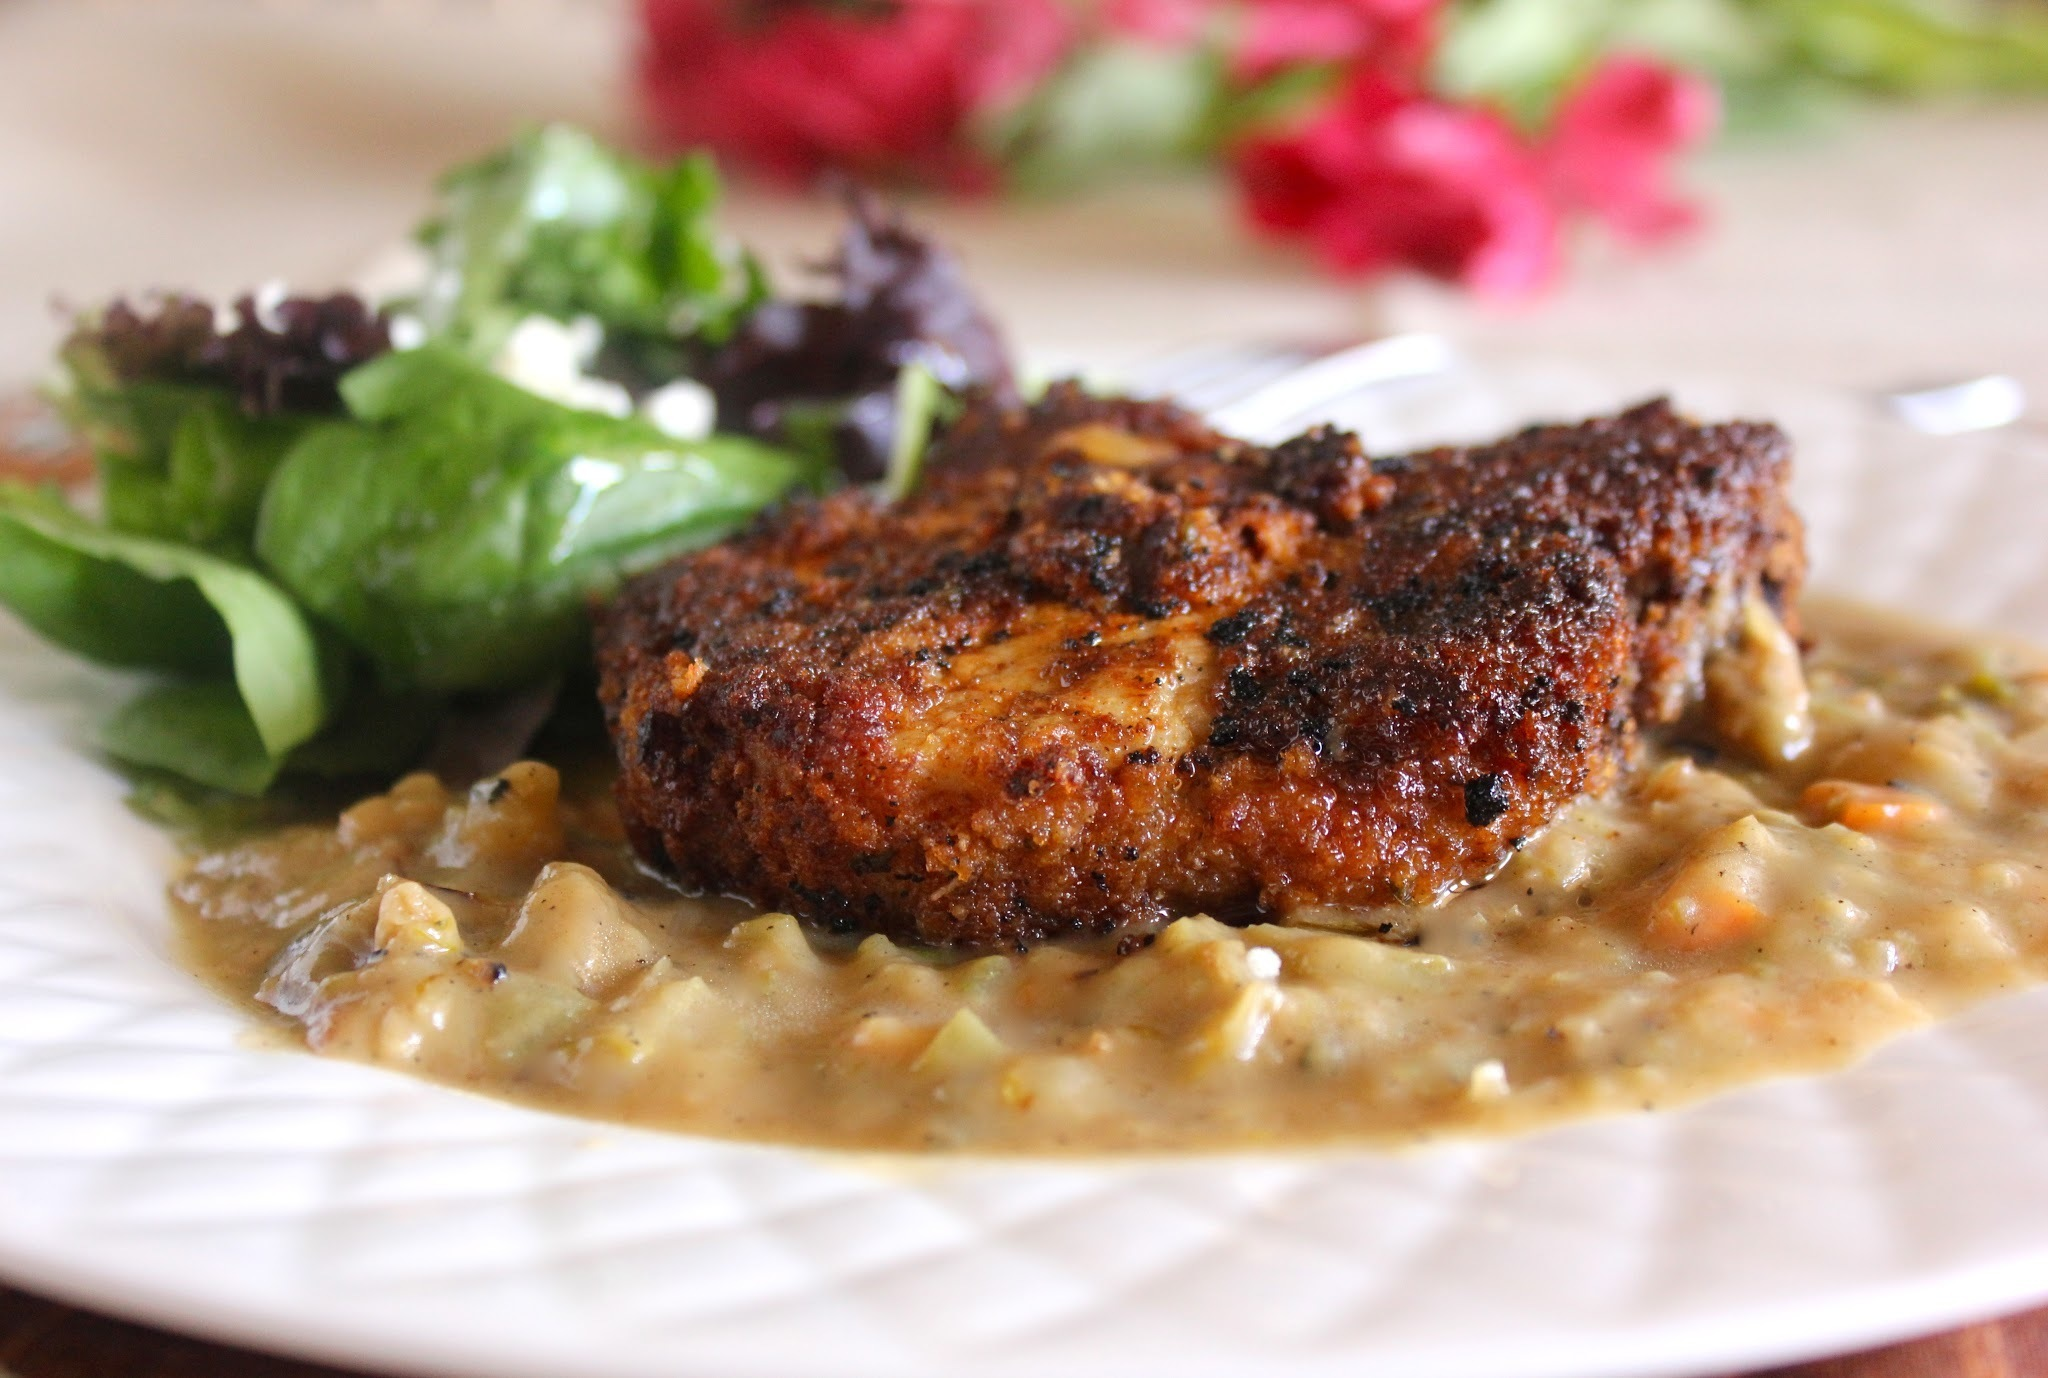 Breaded Pork Chops with Gravy